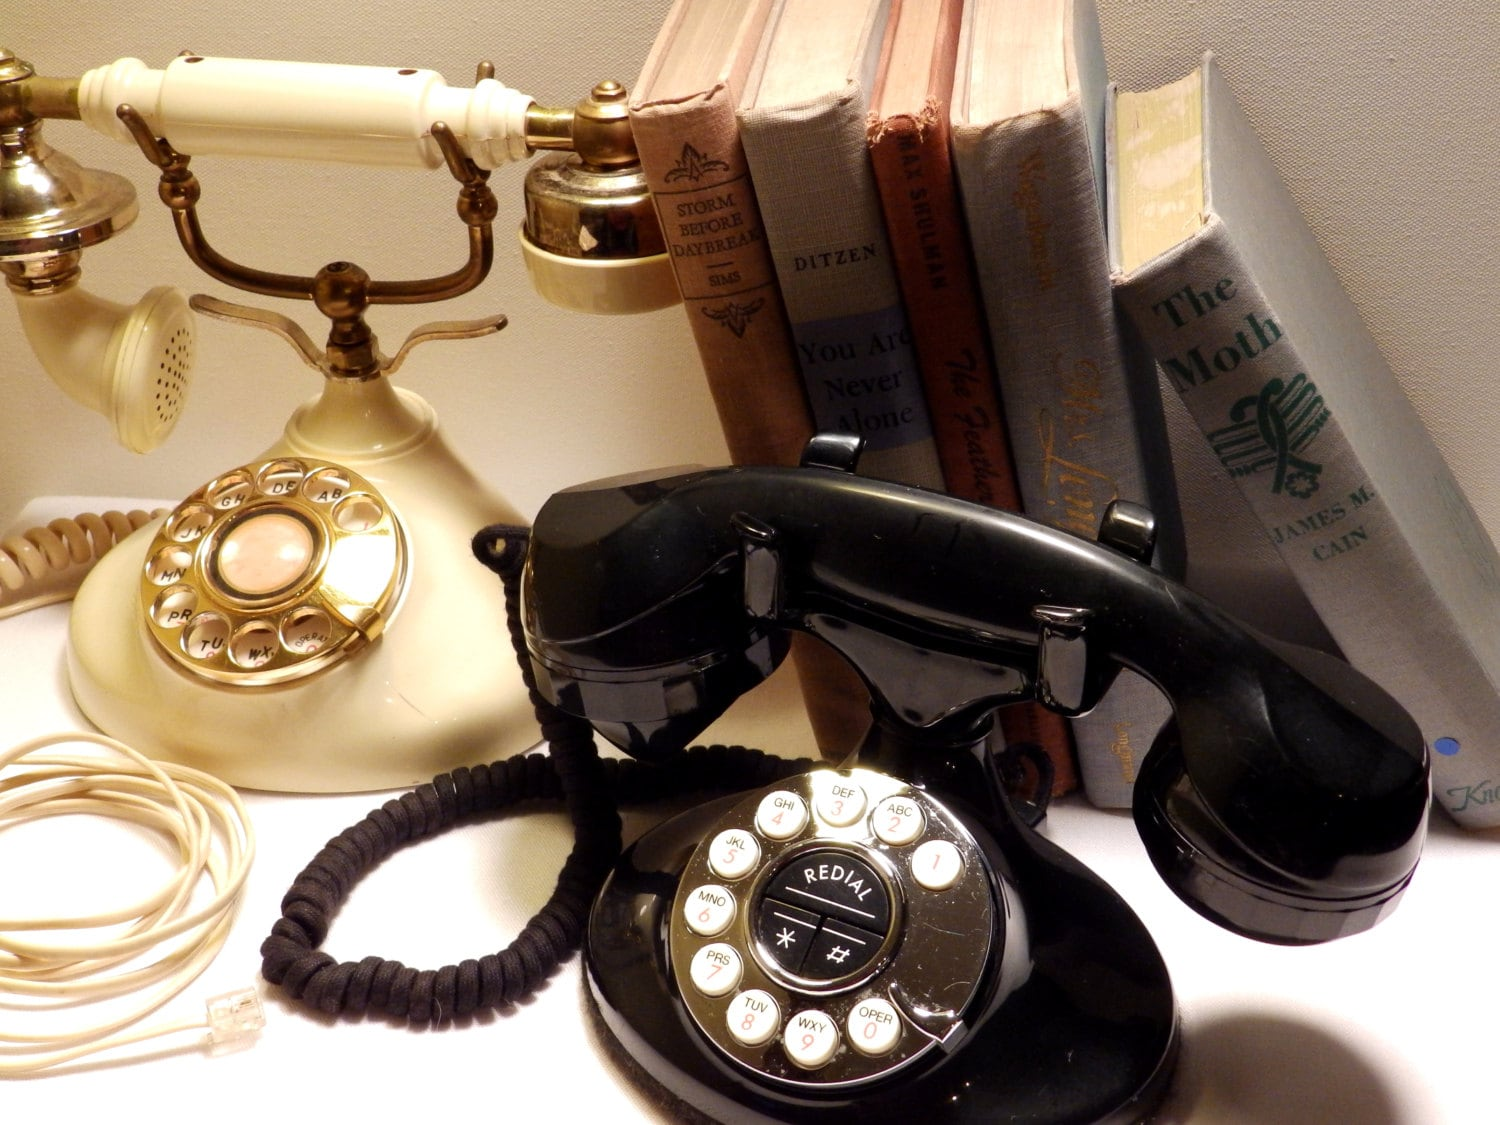 Instant Set of Vintage Phones Shabby Boho Collectible Home Office or Dorm Decor - bauble2bijou